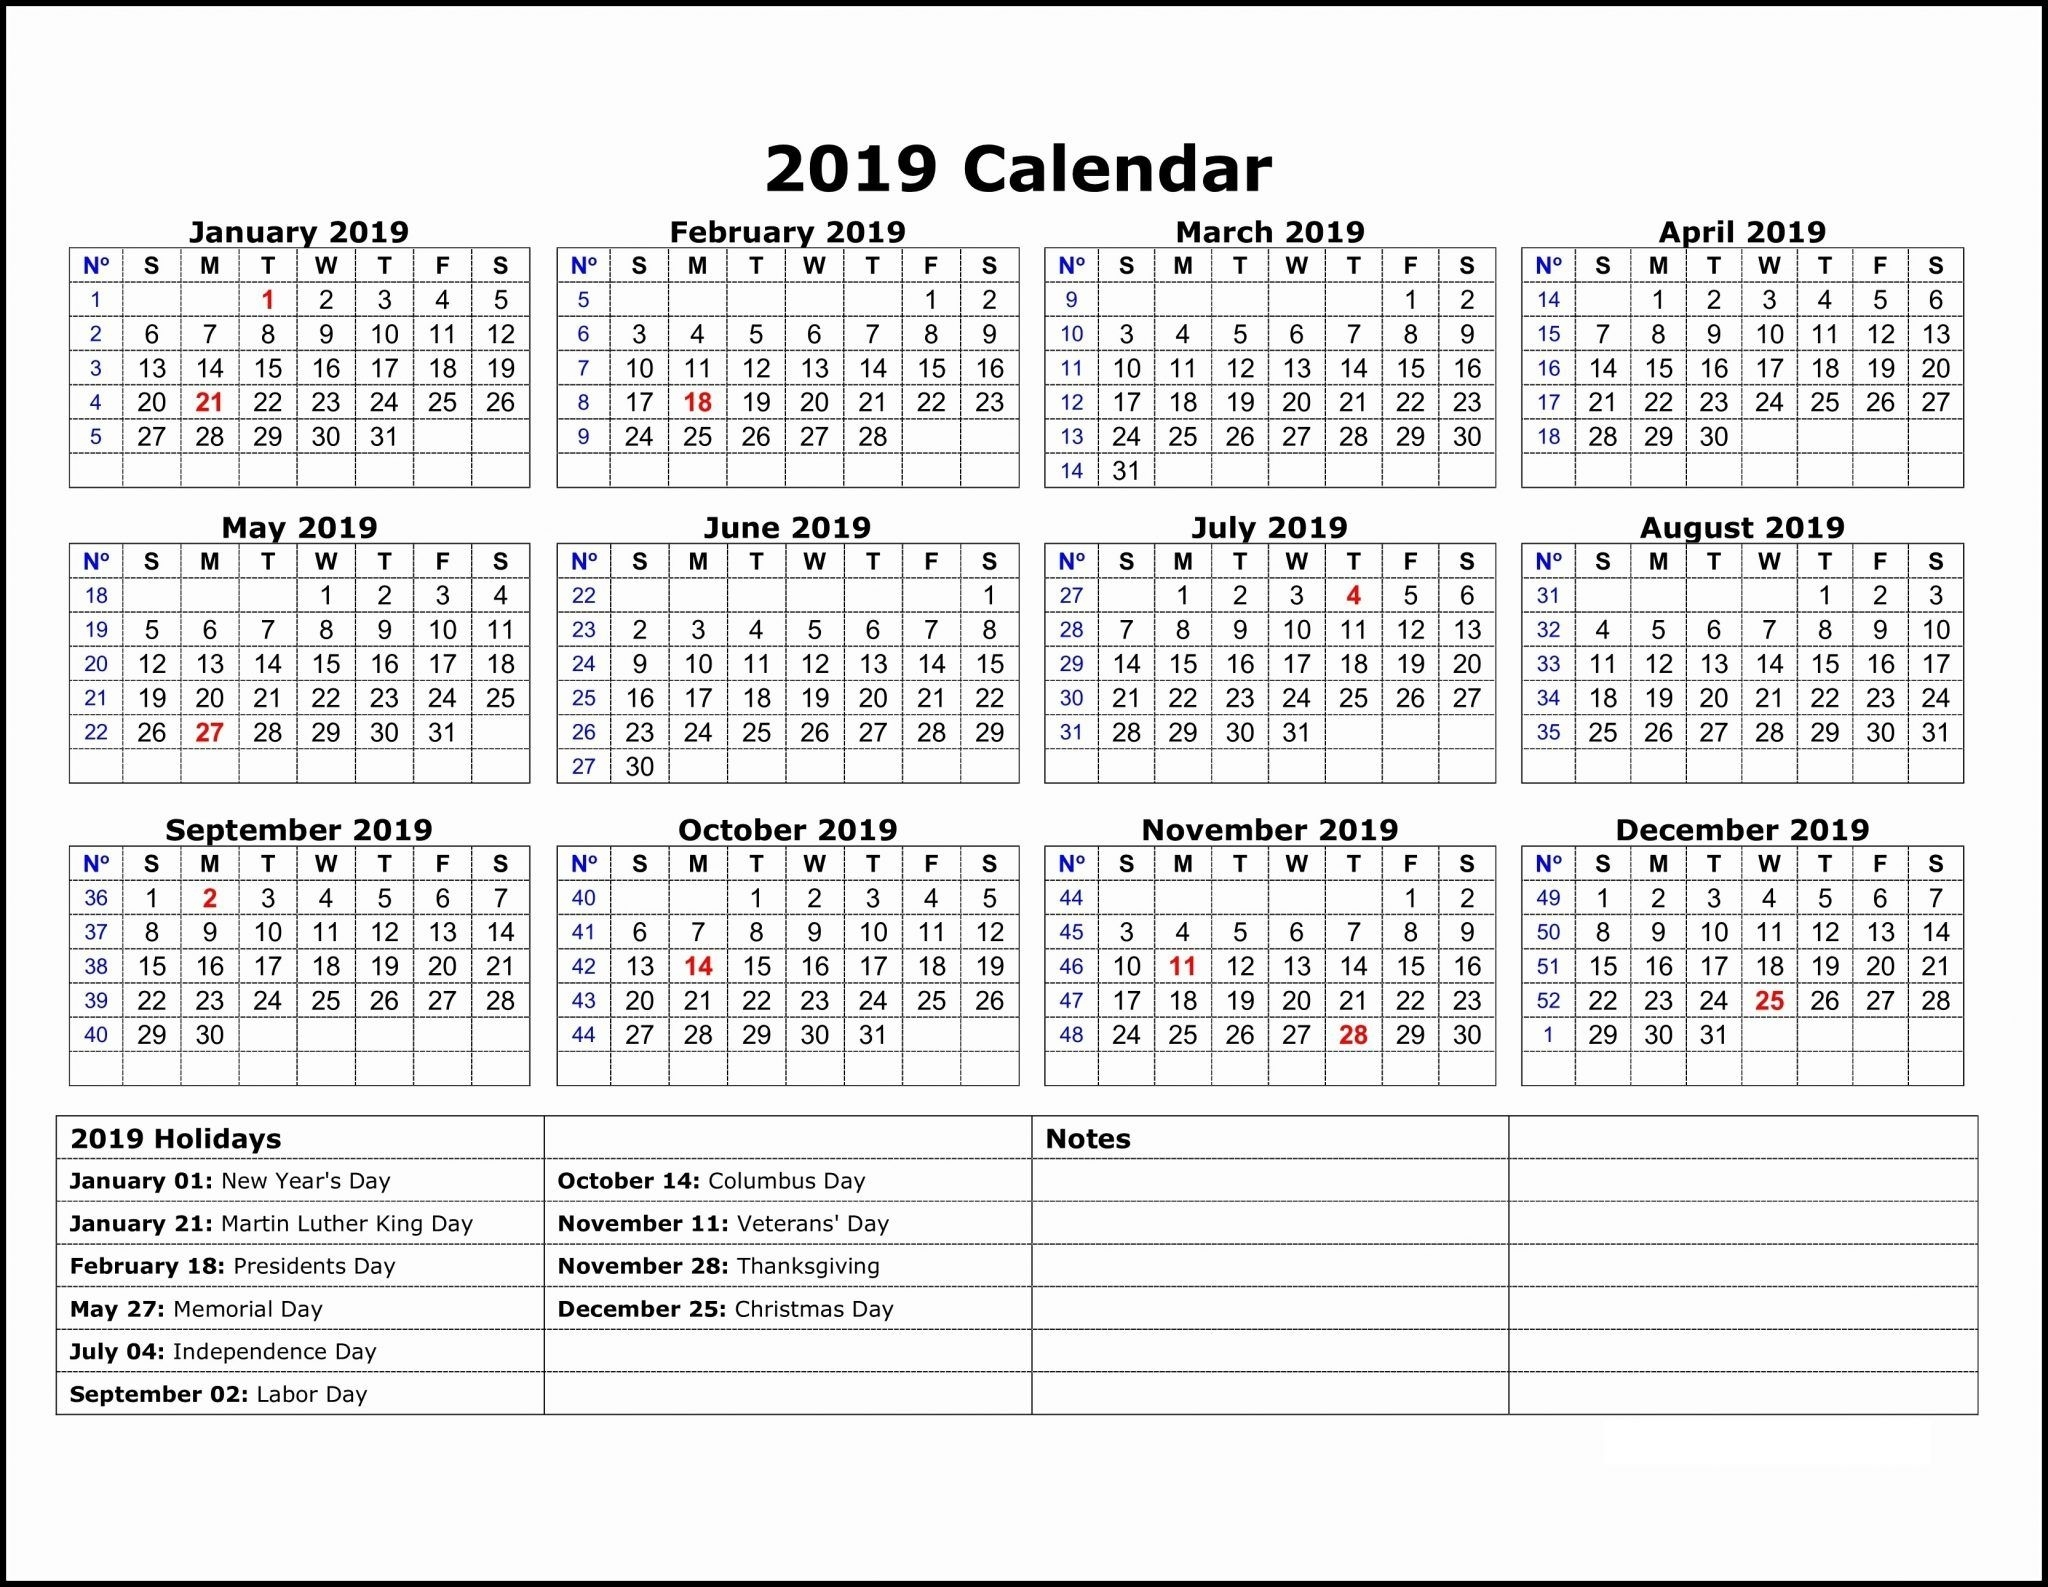 2019 Calendar Template One Page | 12 Month Calendar In One